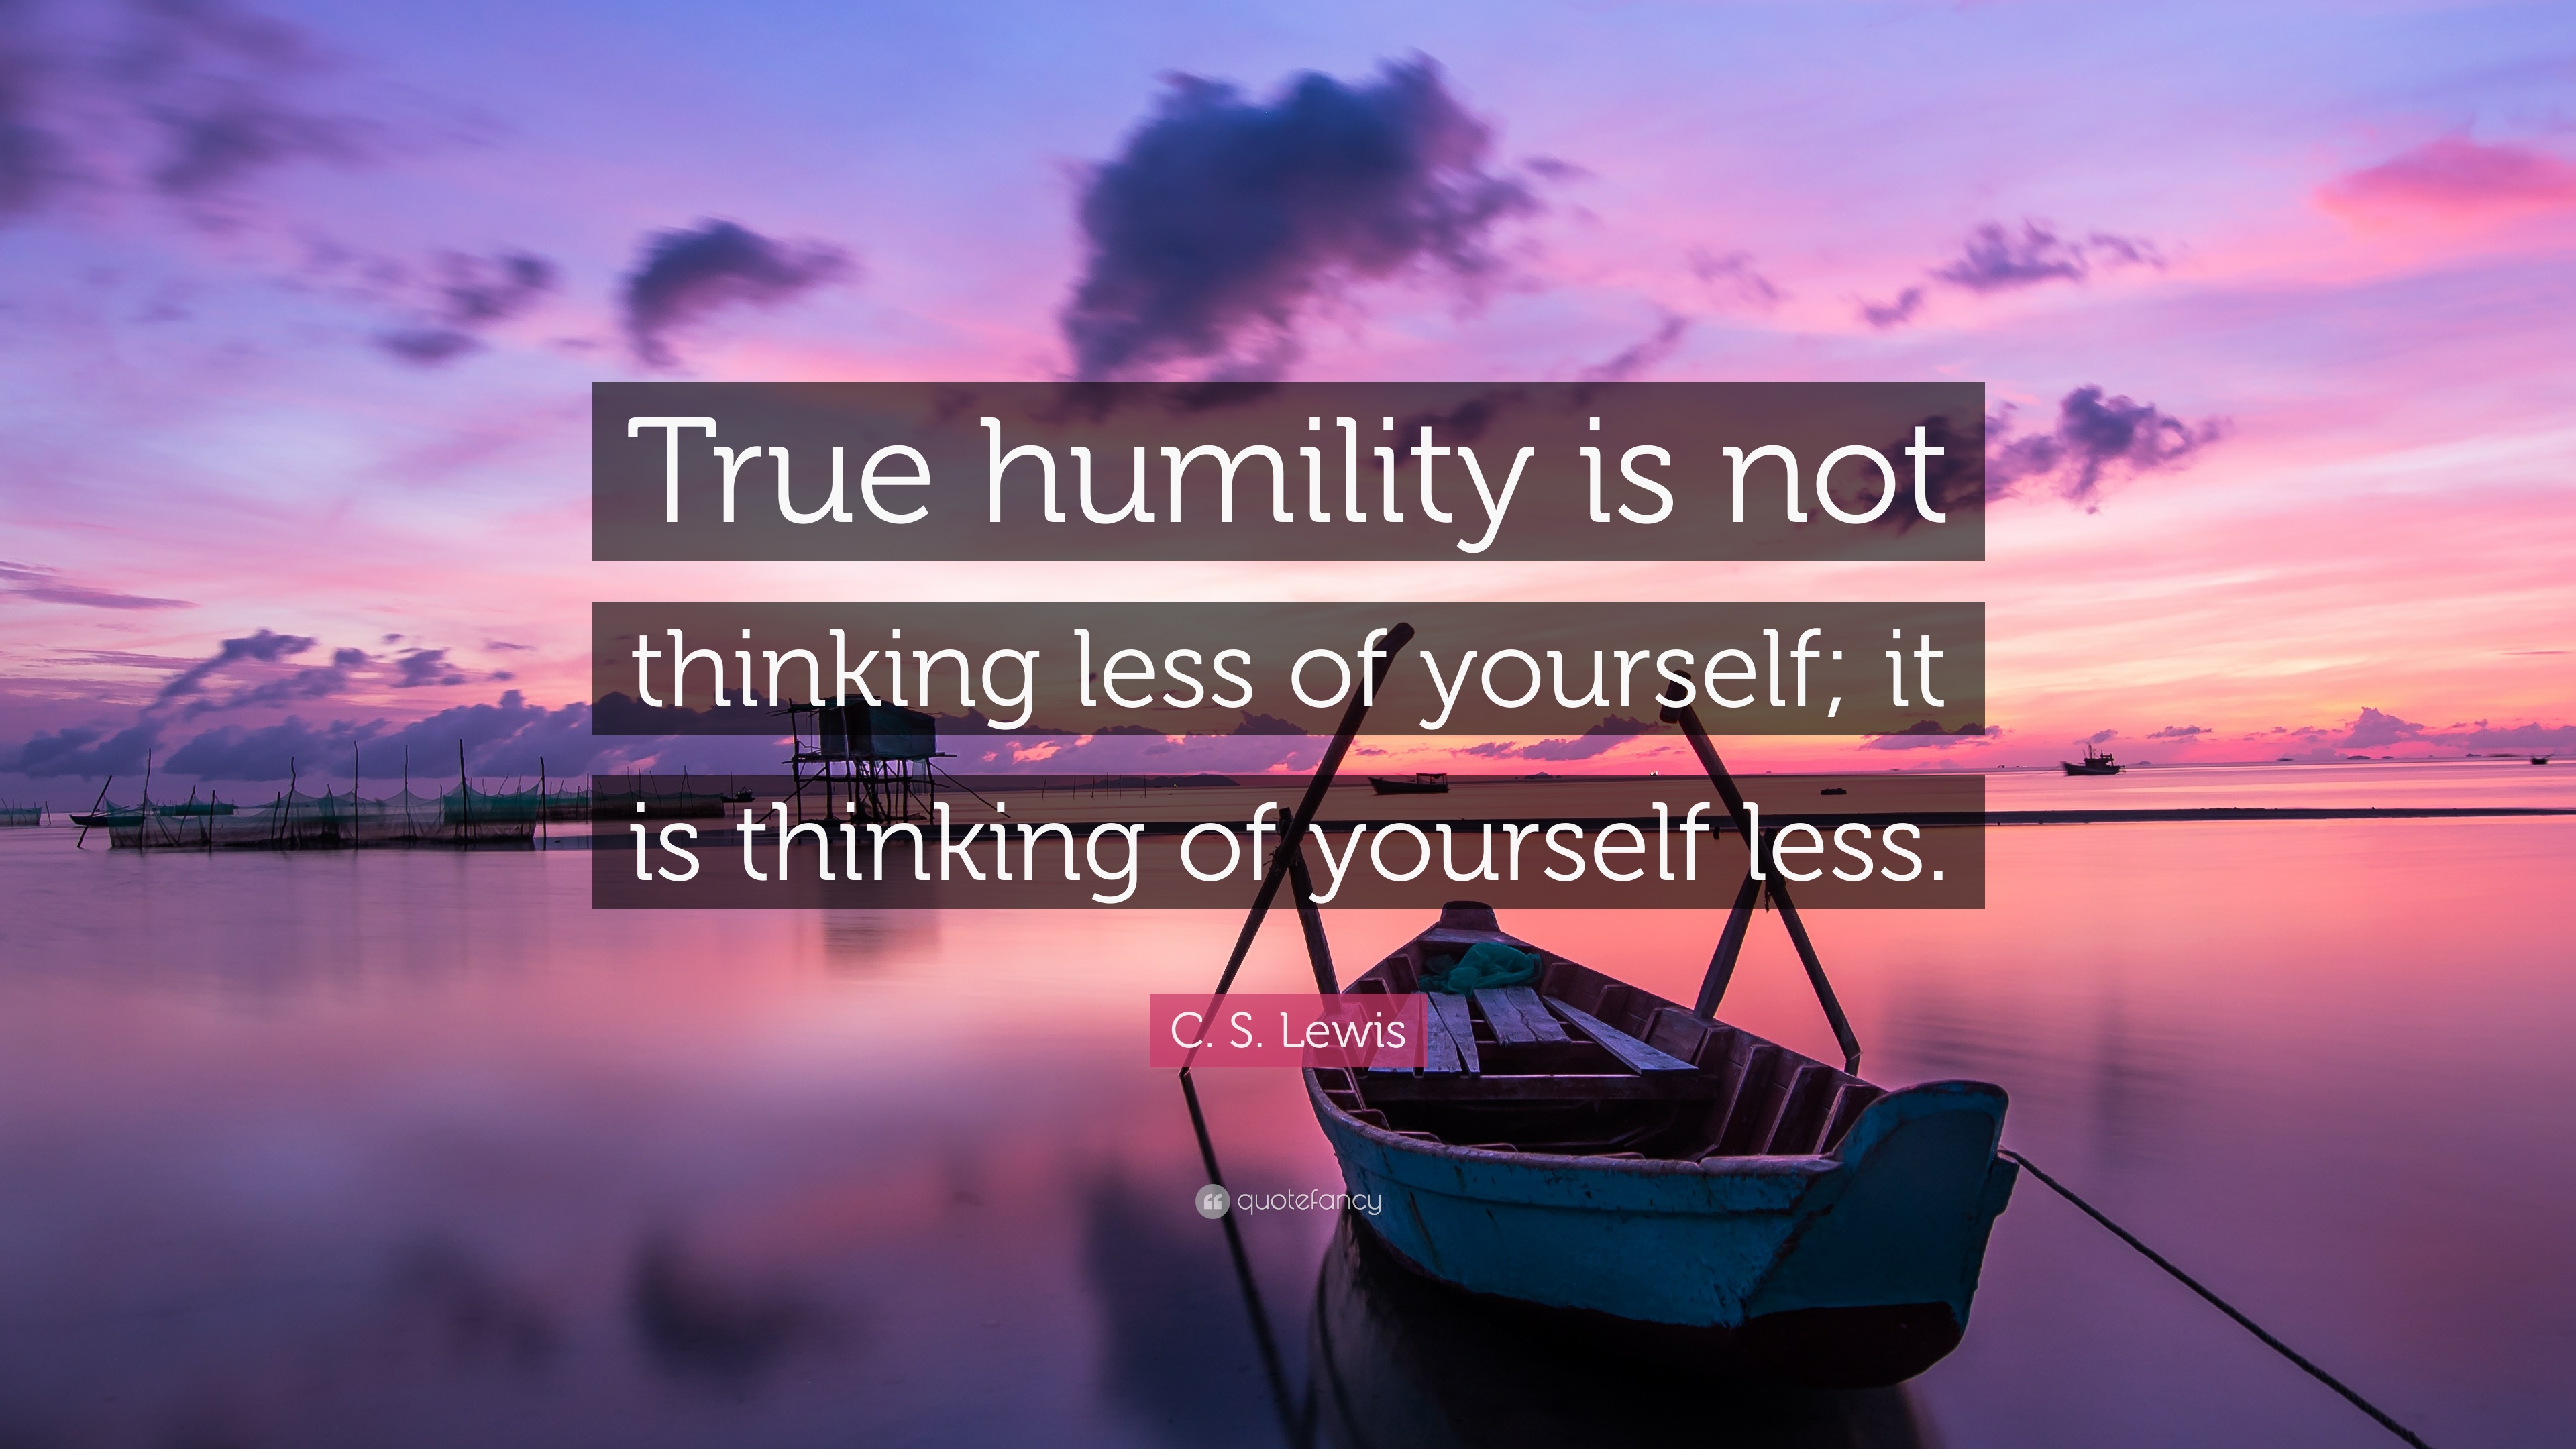 C S Lewis Quote True Humility Is Not Thinking Less Of